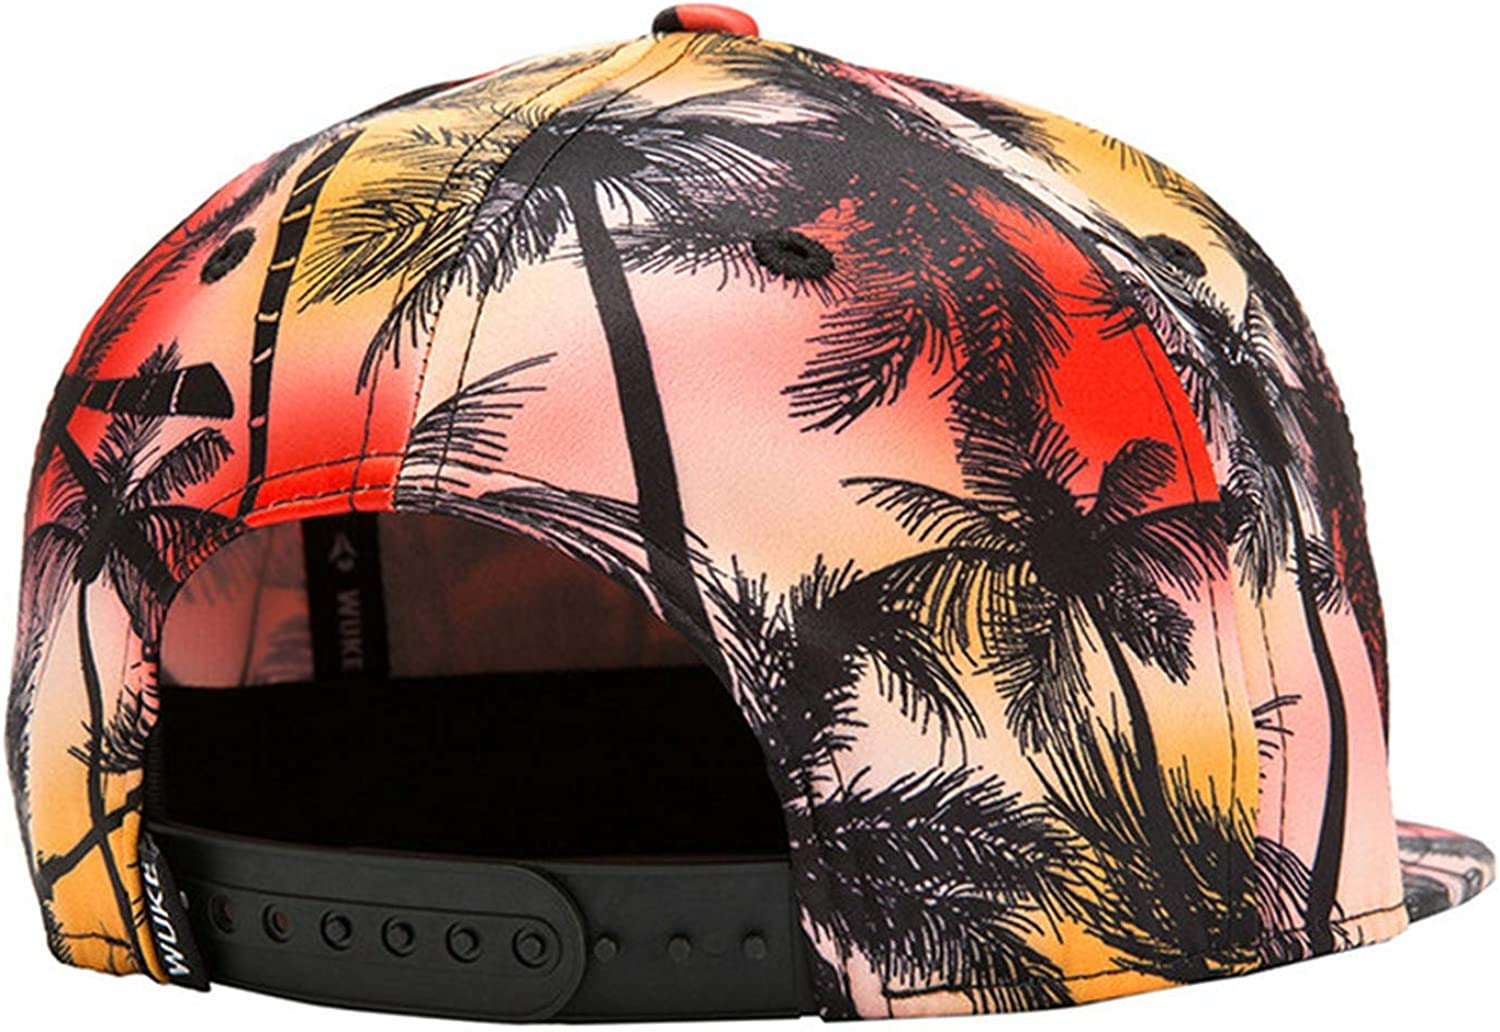 CHENTAI New Spring Summer Baseball Cap Male Female 3D Print Coconut Tree Hip Hop Hat Fashion Girl Hat Snapback Cap